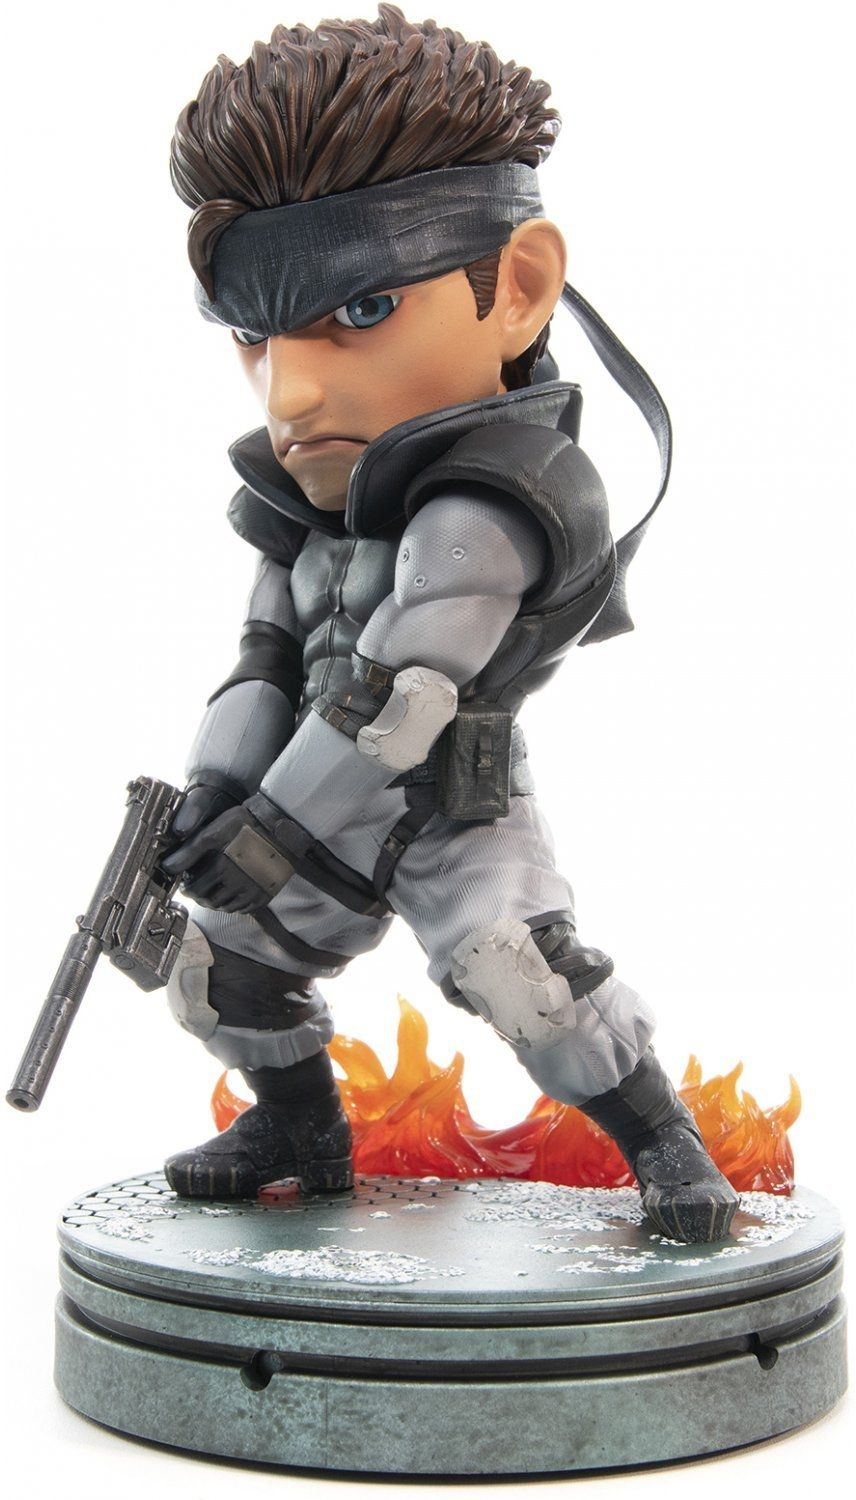 Статуетка First 4 Figures Metal Gear Solid - Solid Snake SD, 20cm - 5